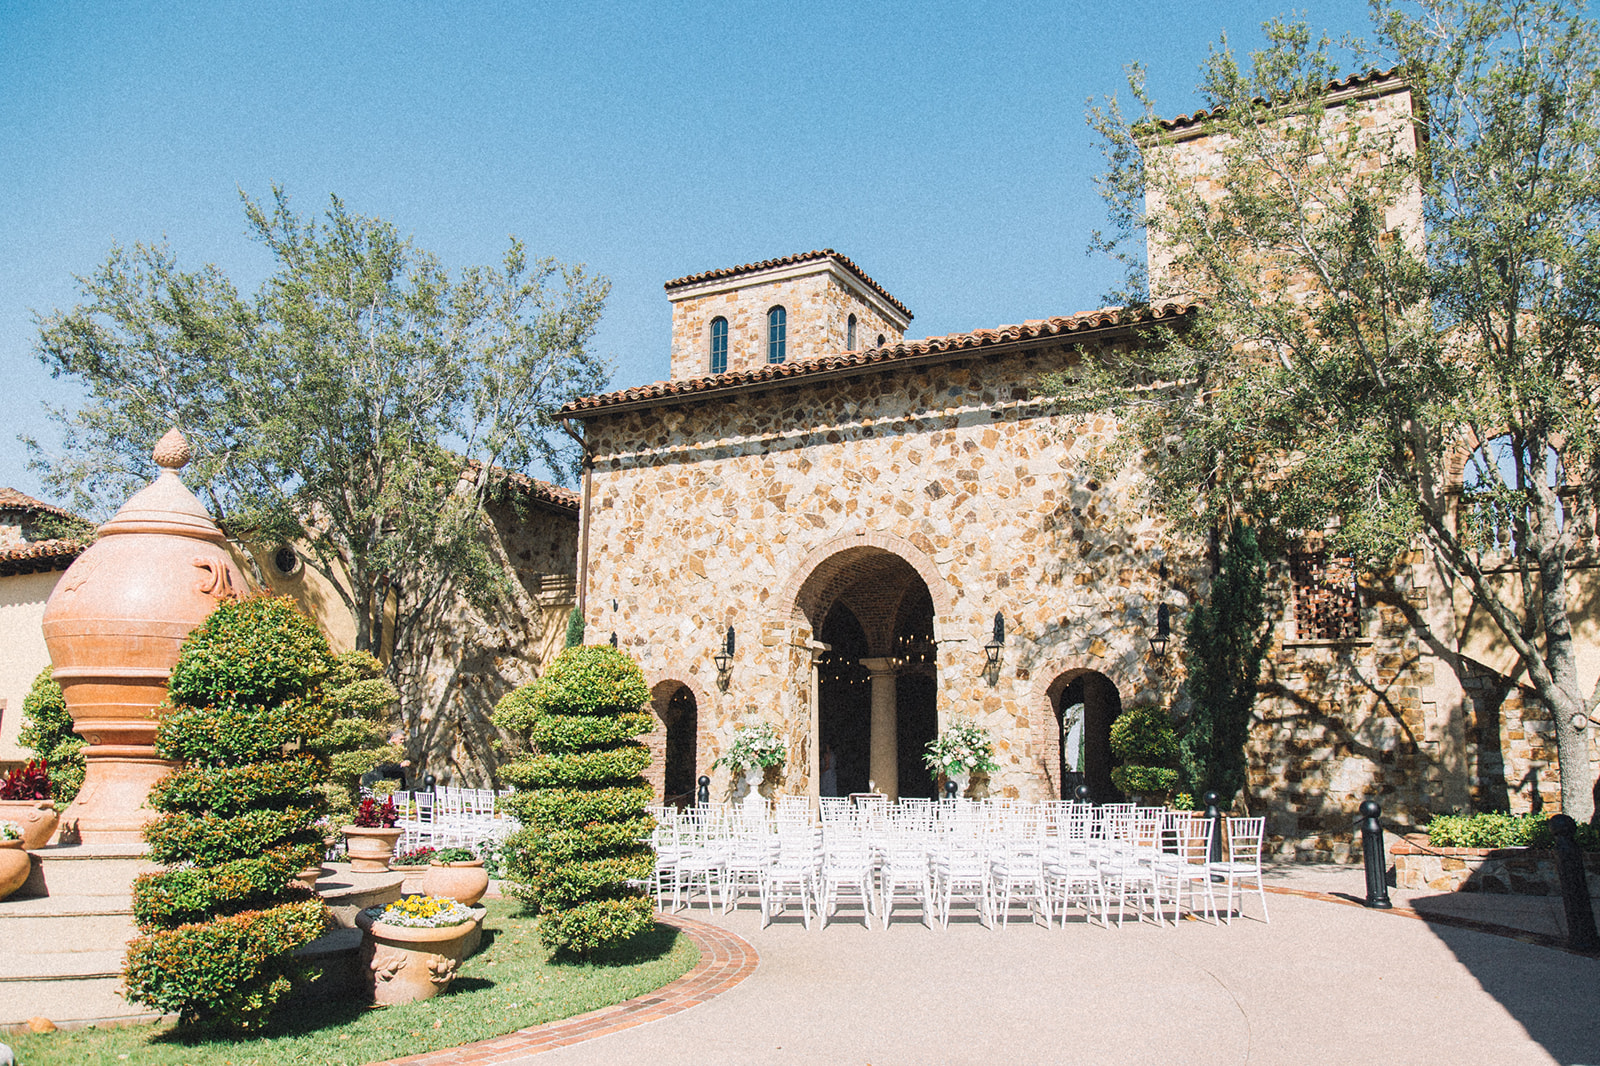 bella_collina_wedding_venue_-35.jpg